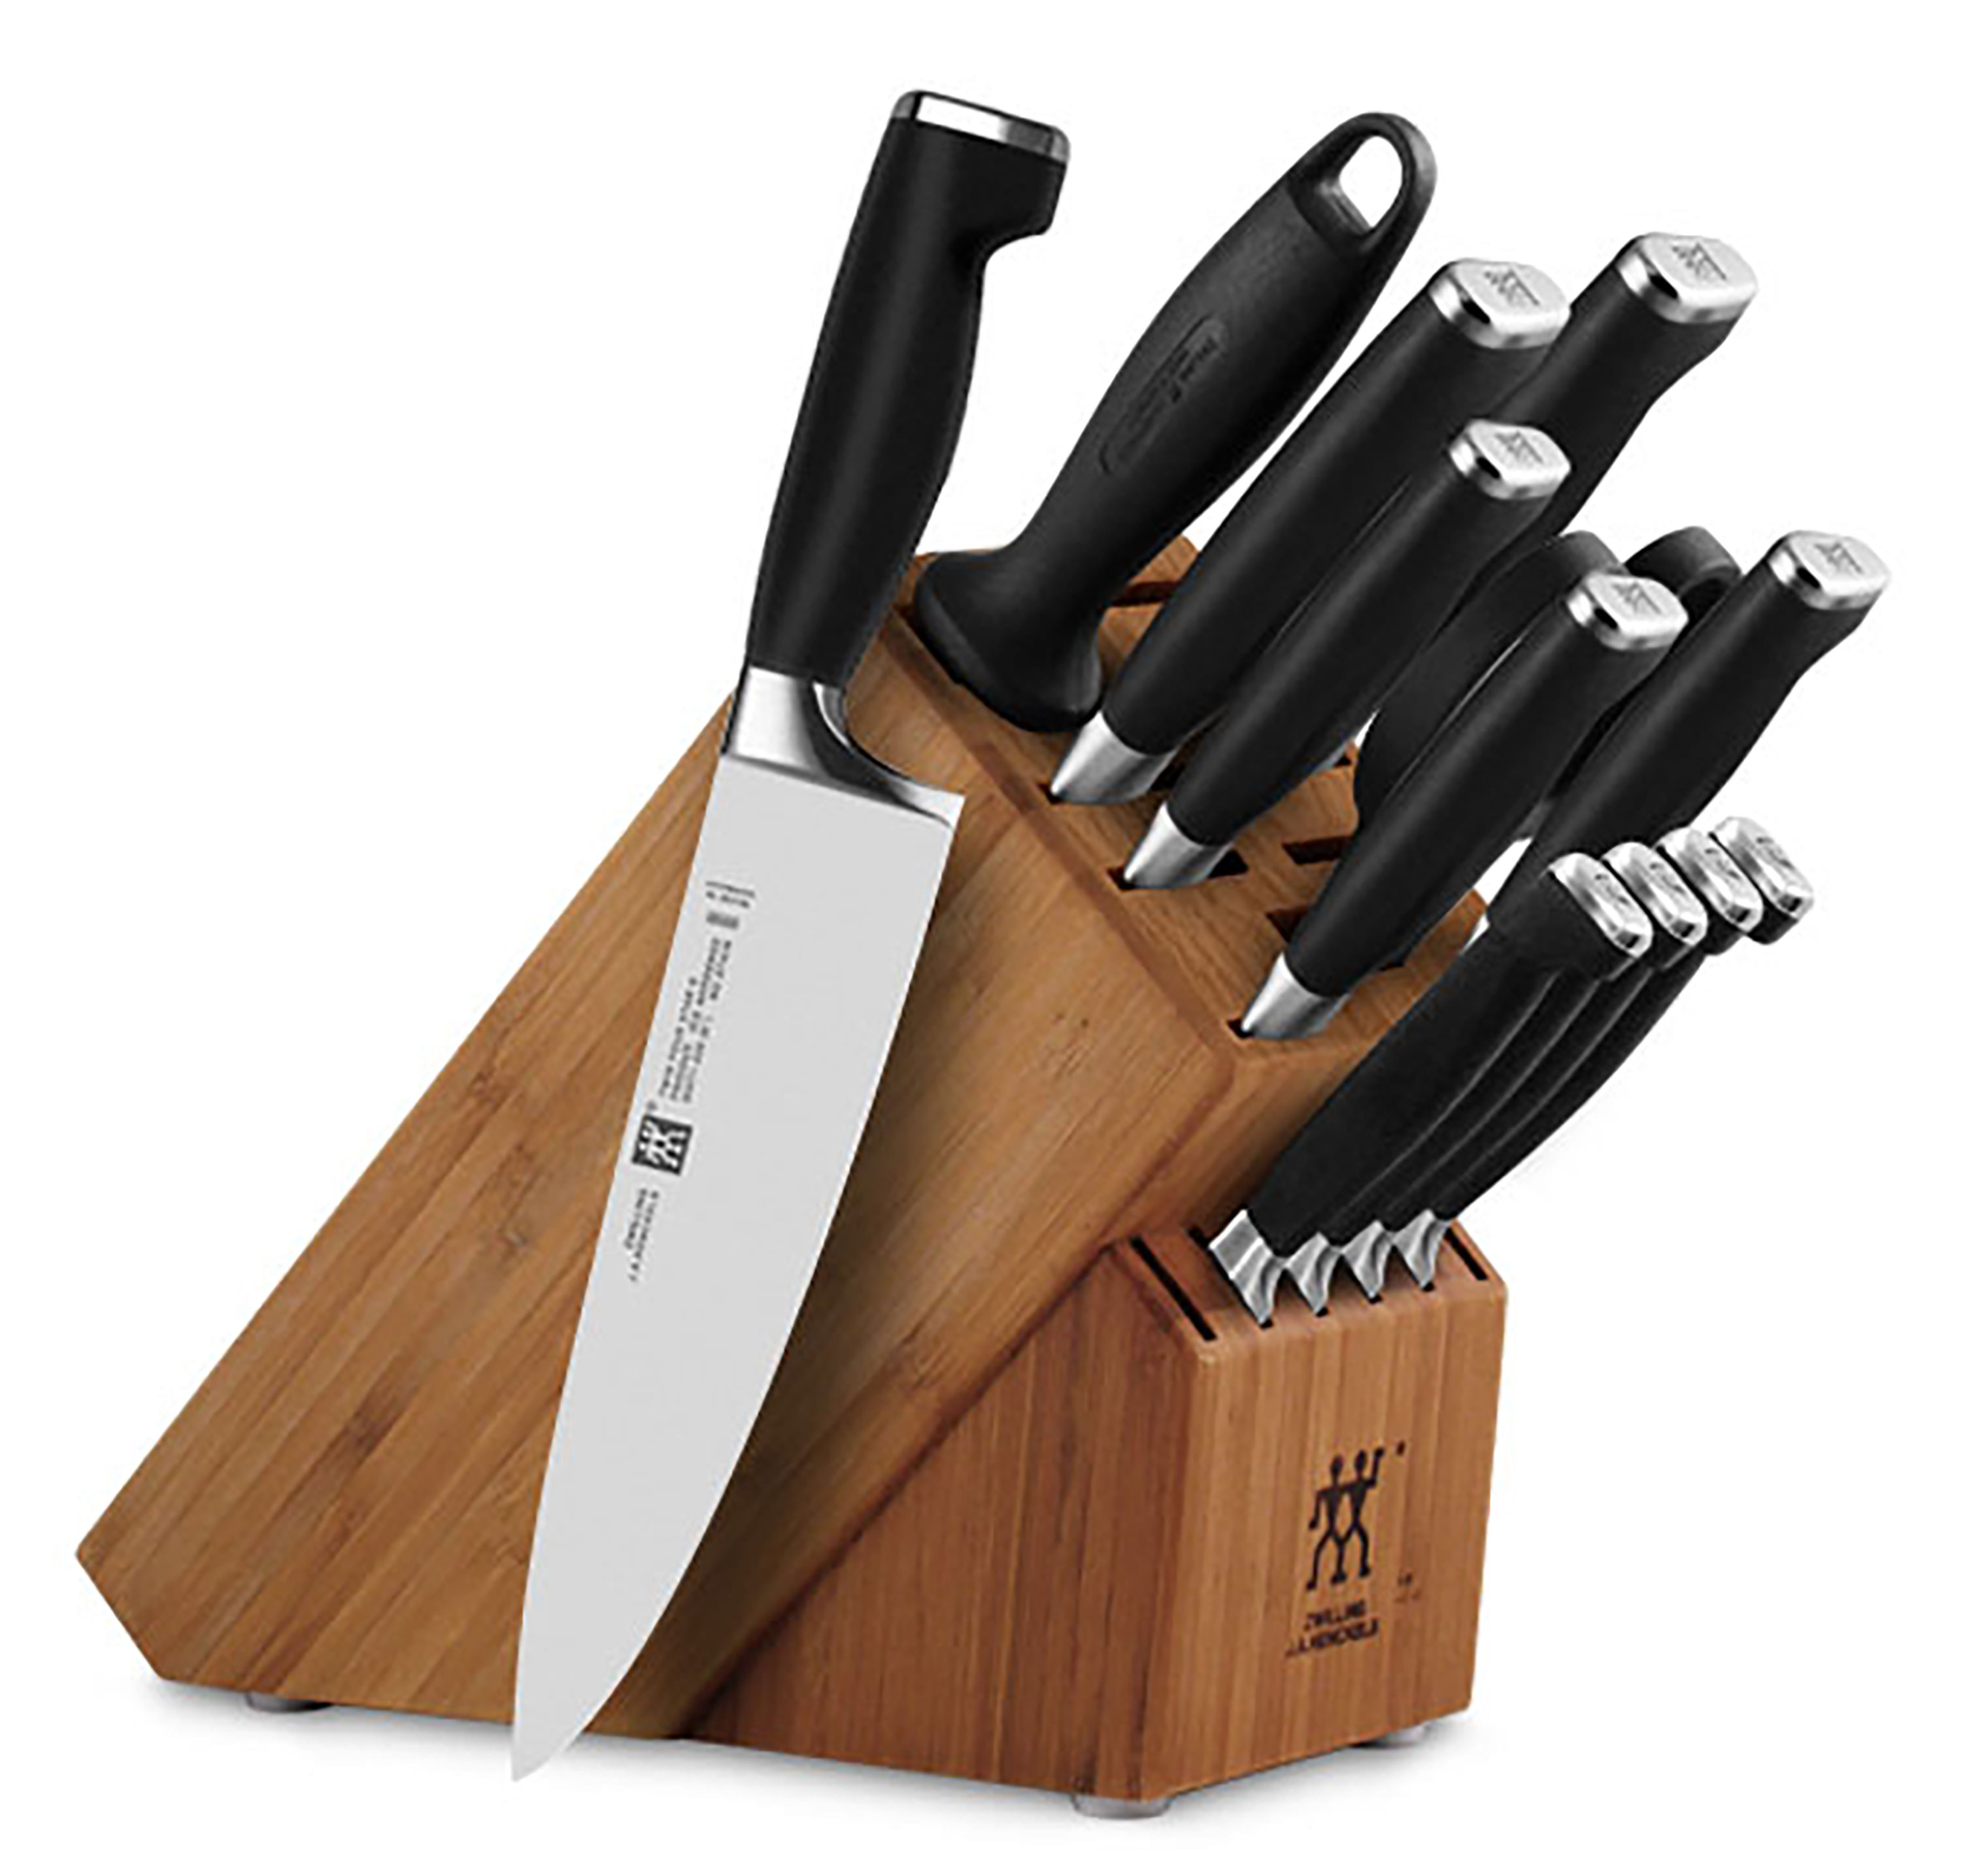 Raclette Tischgrill Zwilling J.a.henckels Zwilling J A Henckels Twin Four Star Ii Knife Block Set